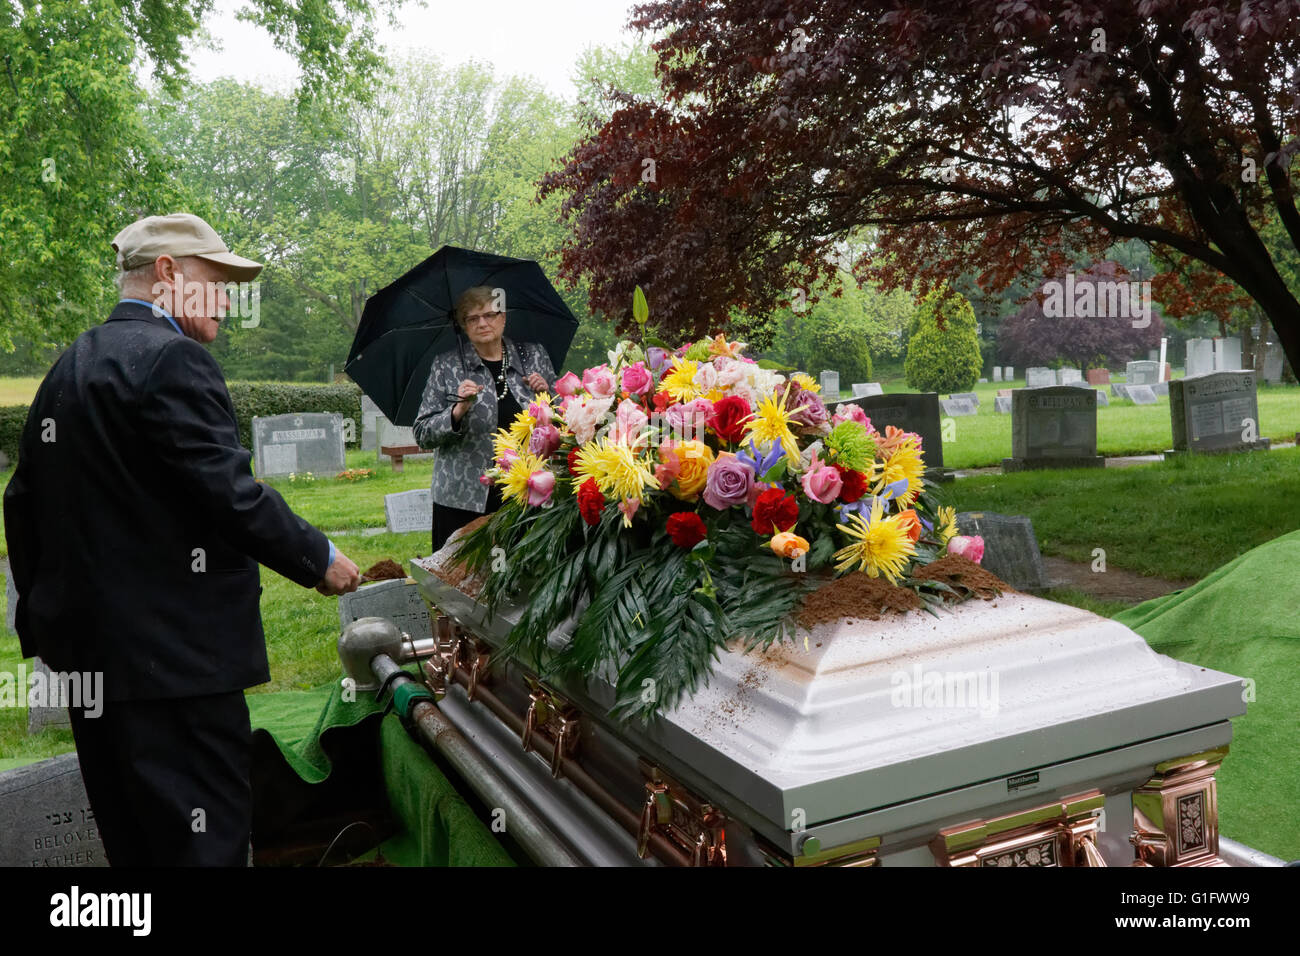 Jewish funeral flowers best flower 2017 opinion jews face rant anti semitism in germany europe izmirmasajfo Images